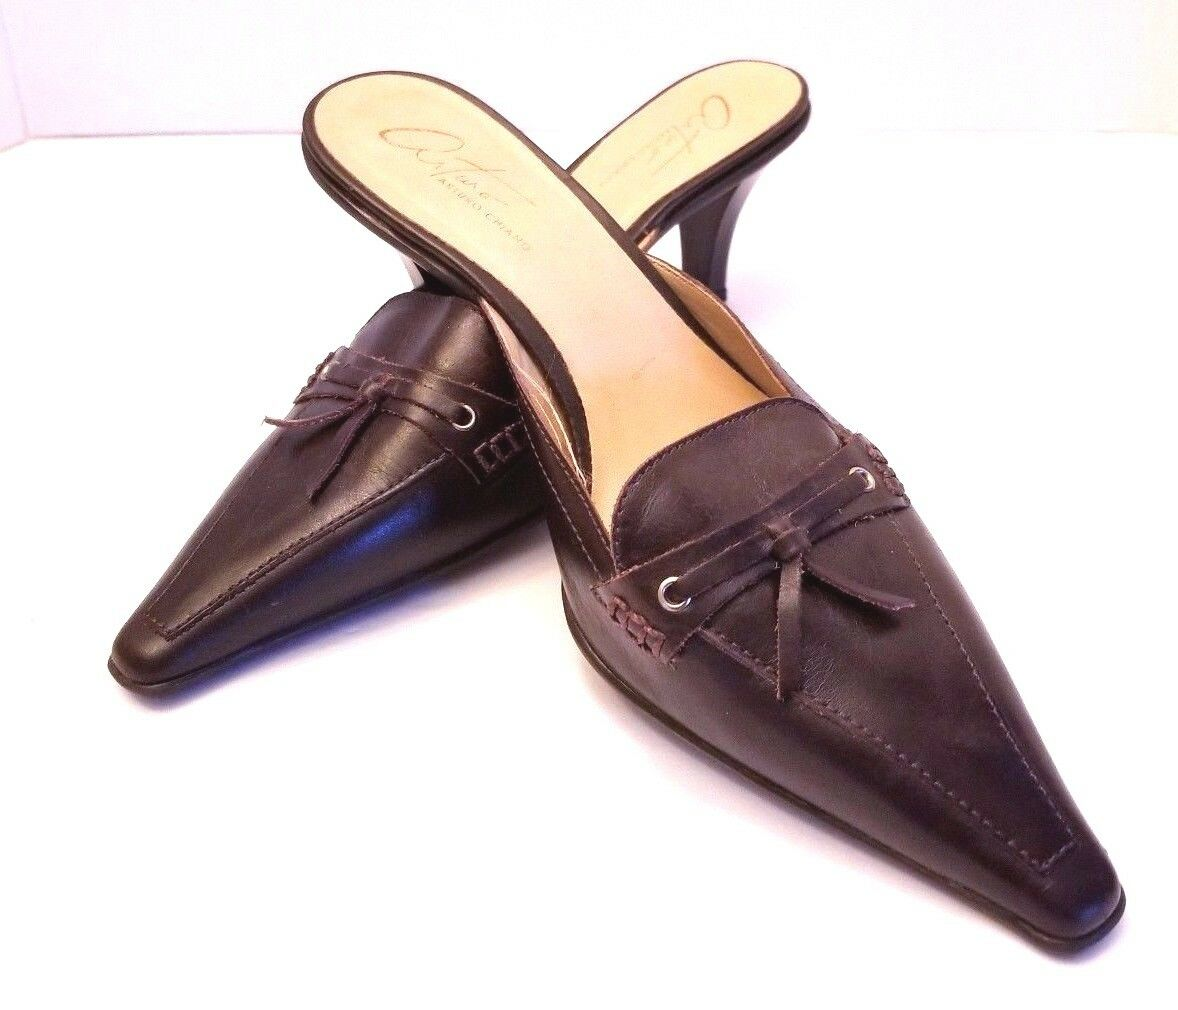 Arturo Chiang Brown Leather Slip On Shoes Pumps Heels Size 6 Pre Owned